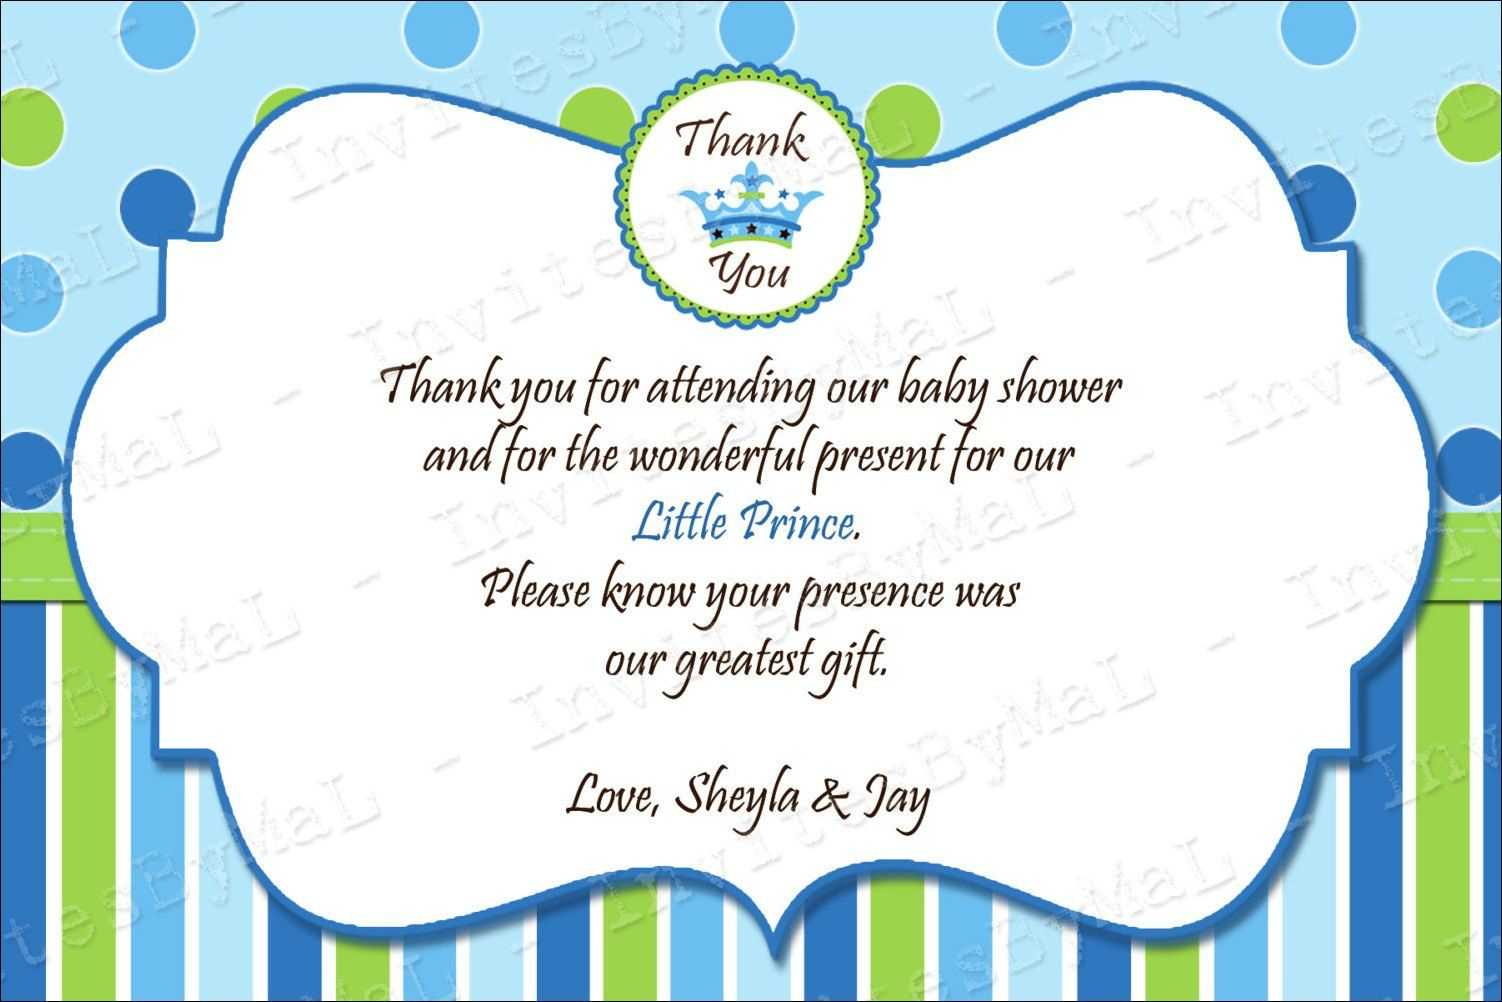 40 Beautiful Baby Shower Thank You Cards Ideas | Baby | Baby With Thank You Card Template For Baby Shower